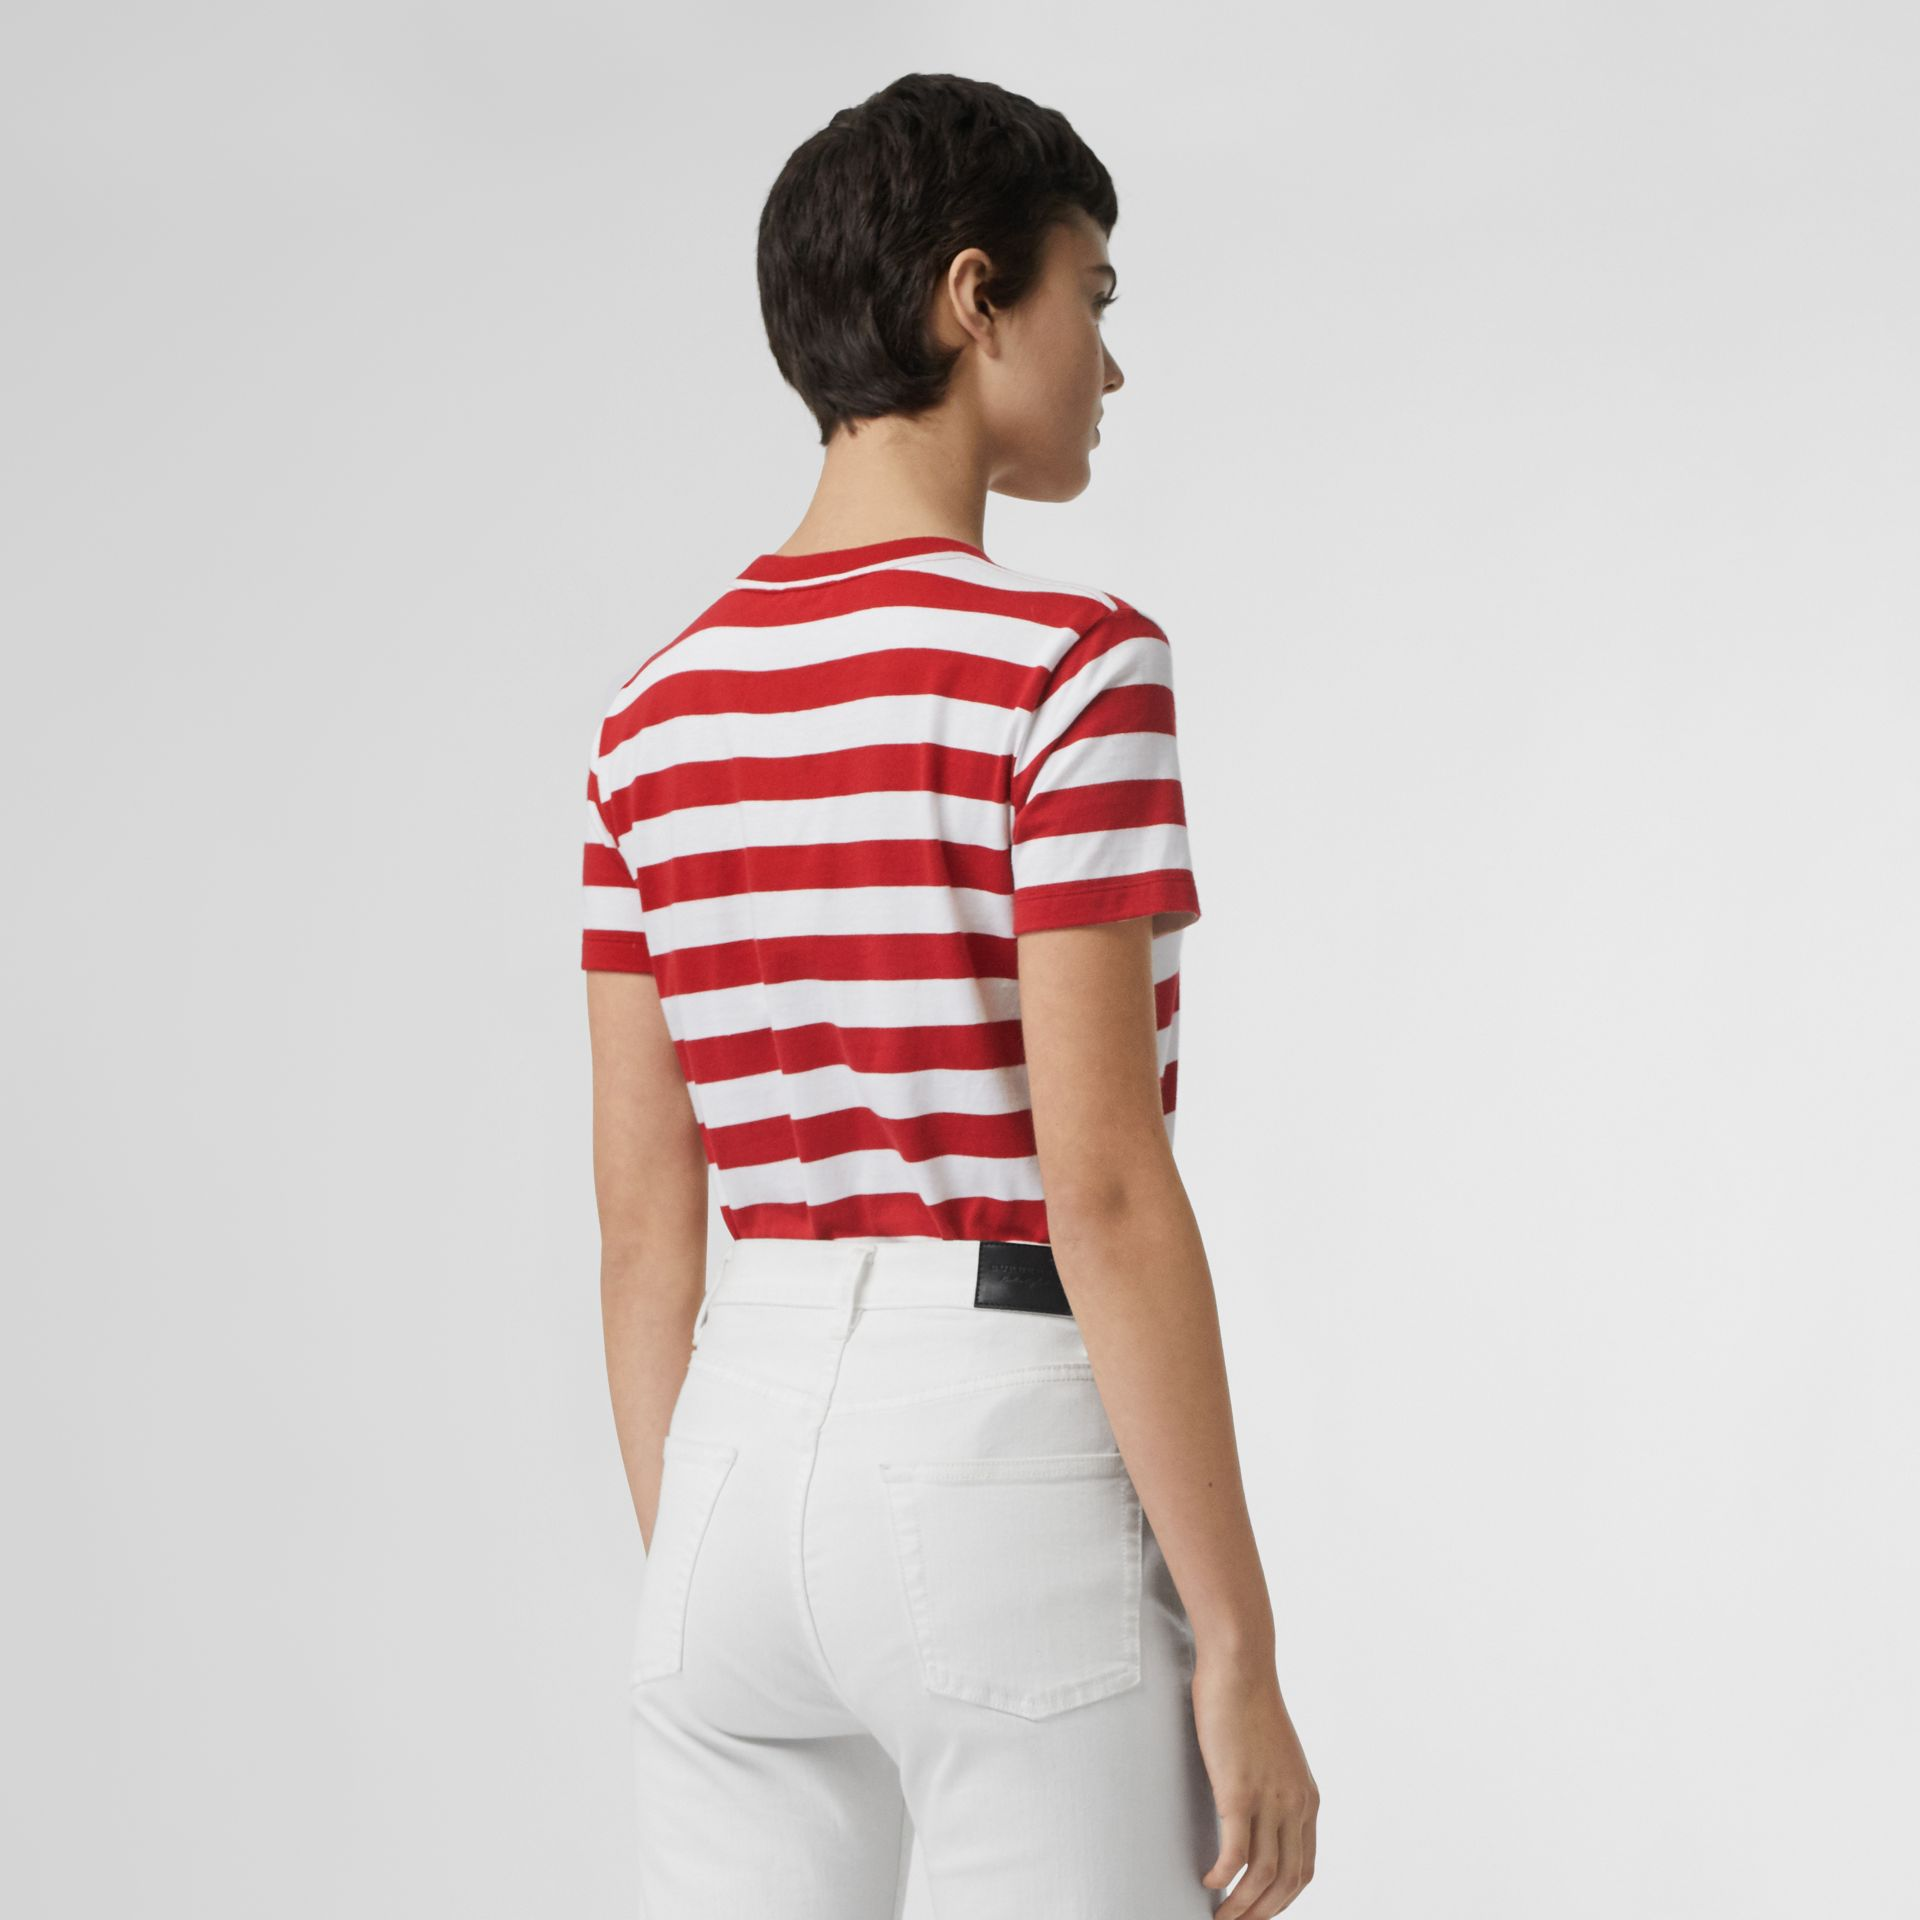 Crest Appliqué Striped Cotton T-shirt in Cadmium Red - Women | Burberry United States - gallery image 2